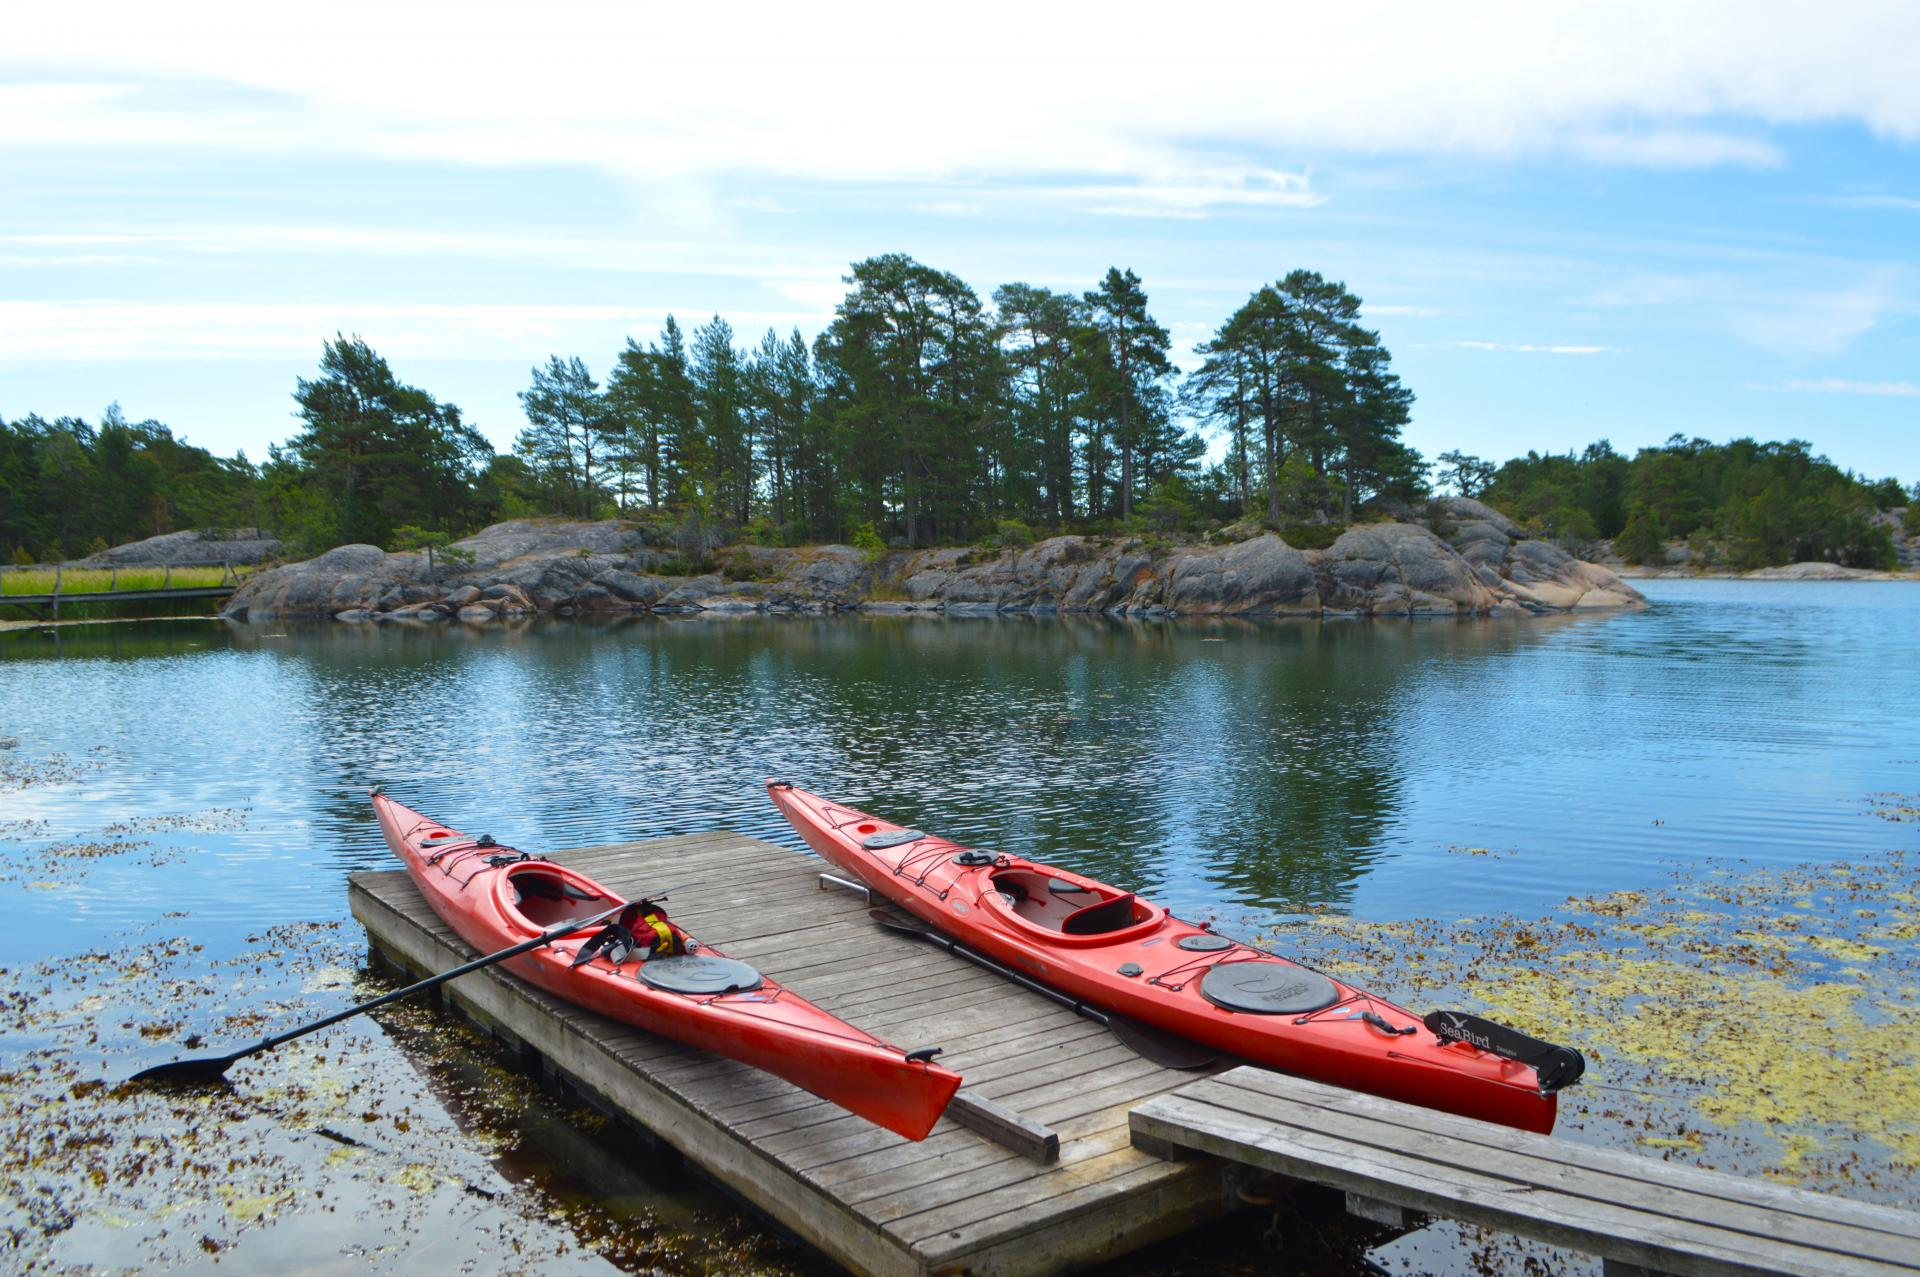 Sormland Sweden travel guide: explore Stockholm archipelago islands